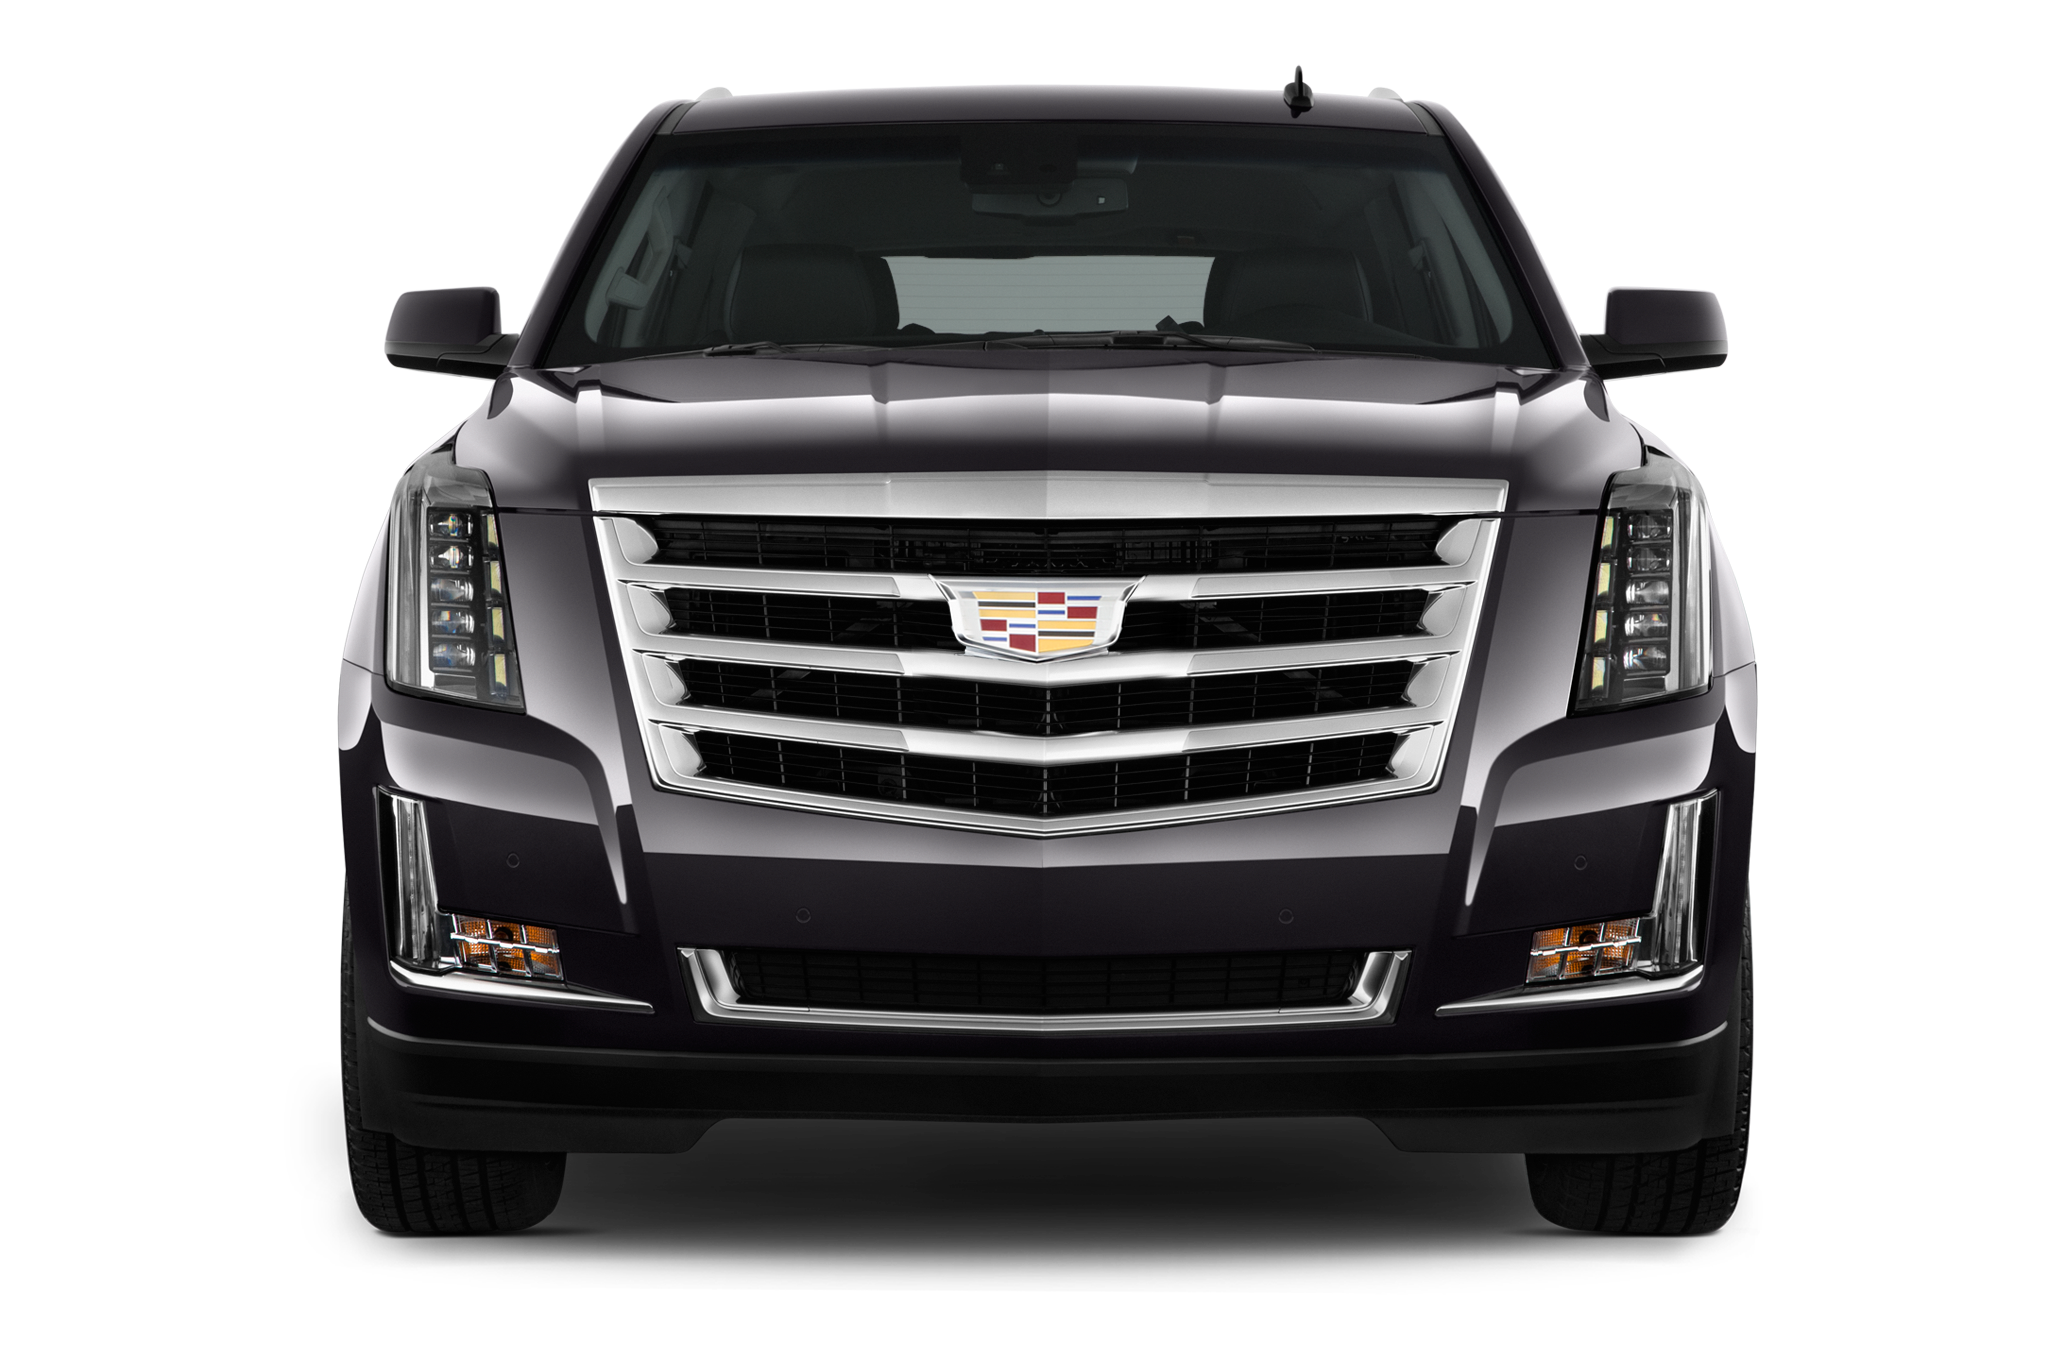 2020 Cadillac Escalade And Escalade ESV: What To Expect